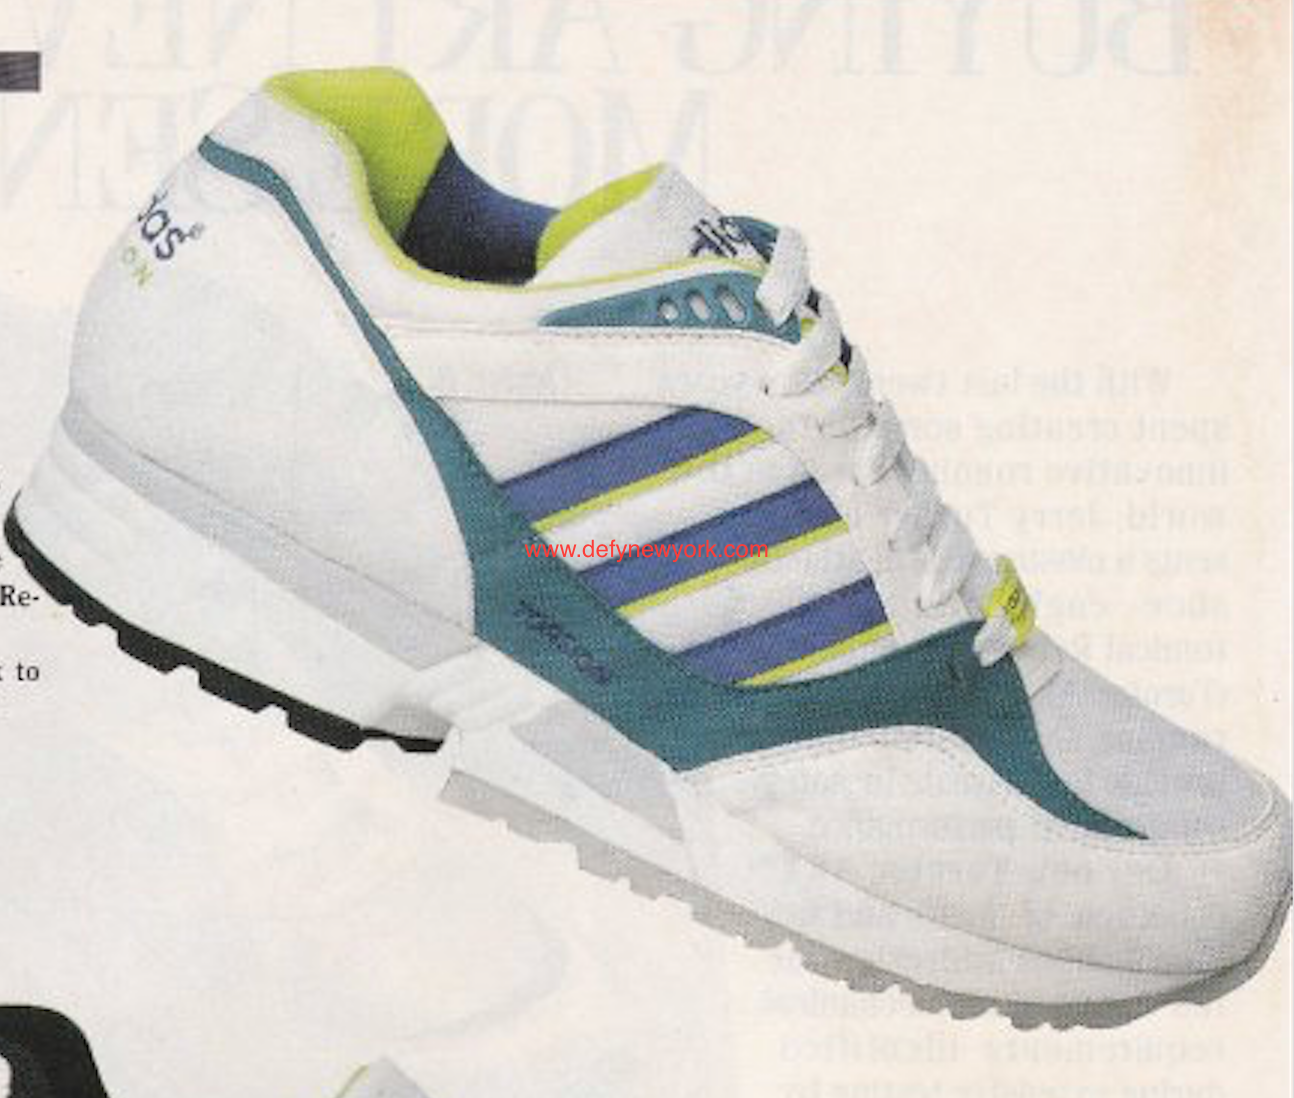 95d5c73df32838 Adidas Torsion Response Running Shoe 1991   DeFY. New York-Sneakers ...